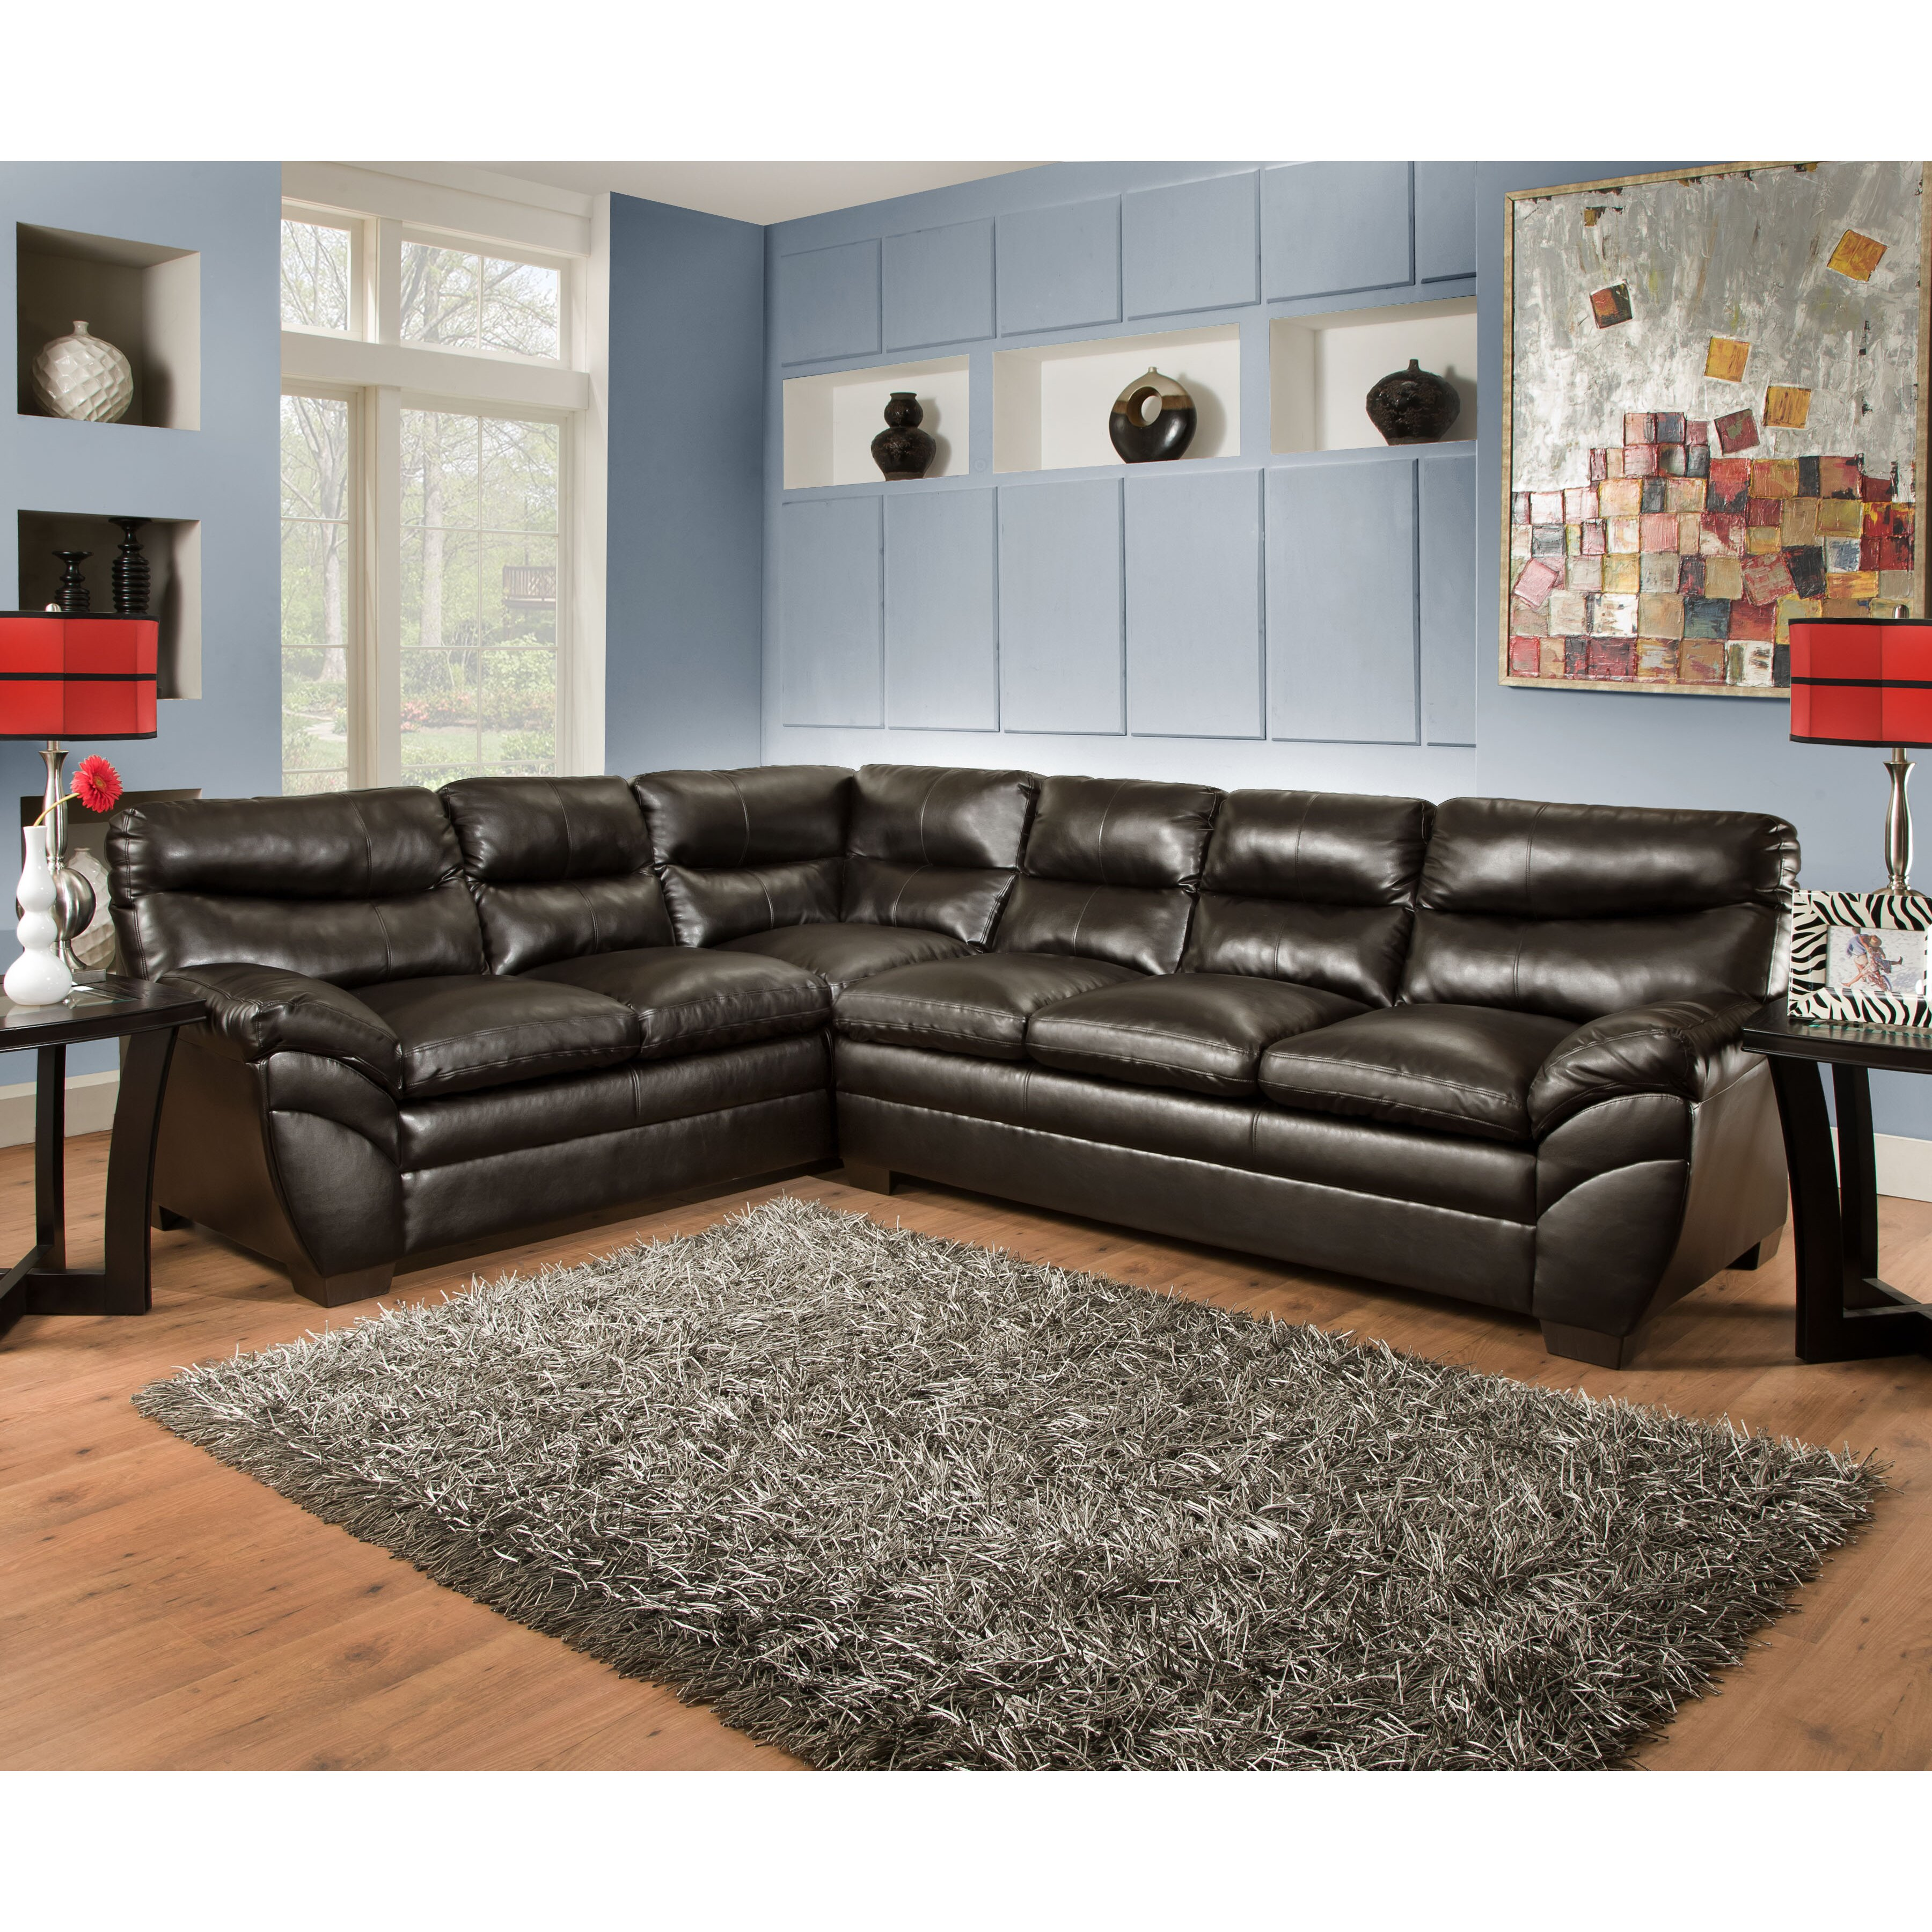 Simmons upholstery soho sectional reviews wayfair for Simmons upholstery sectional sofa